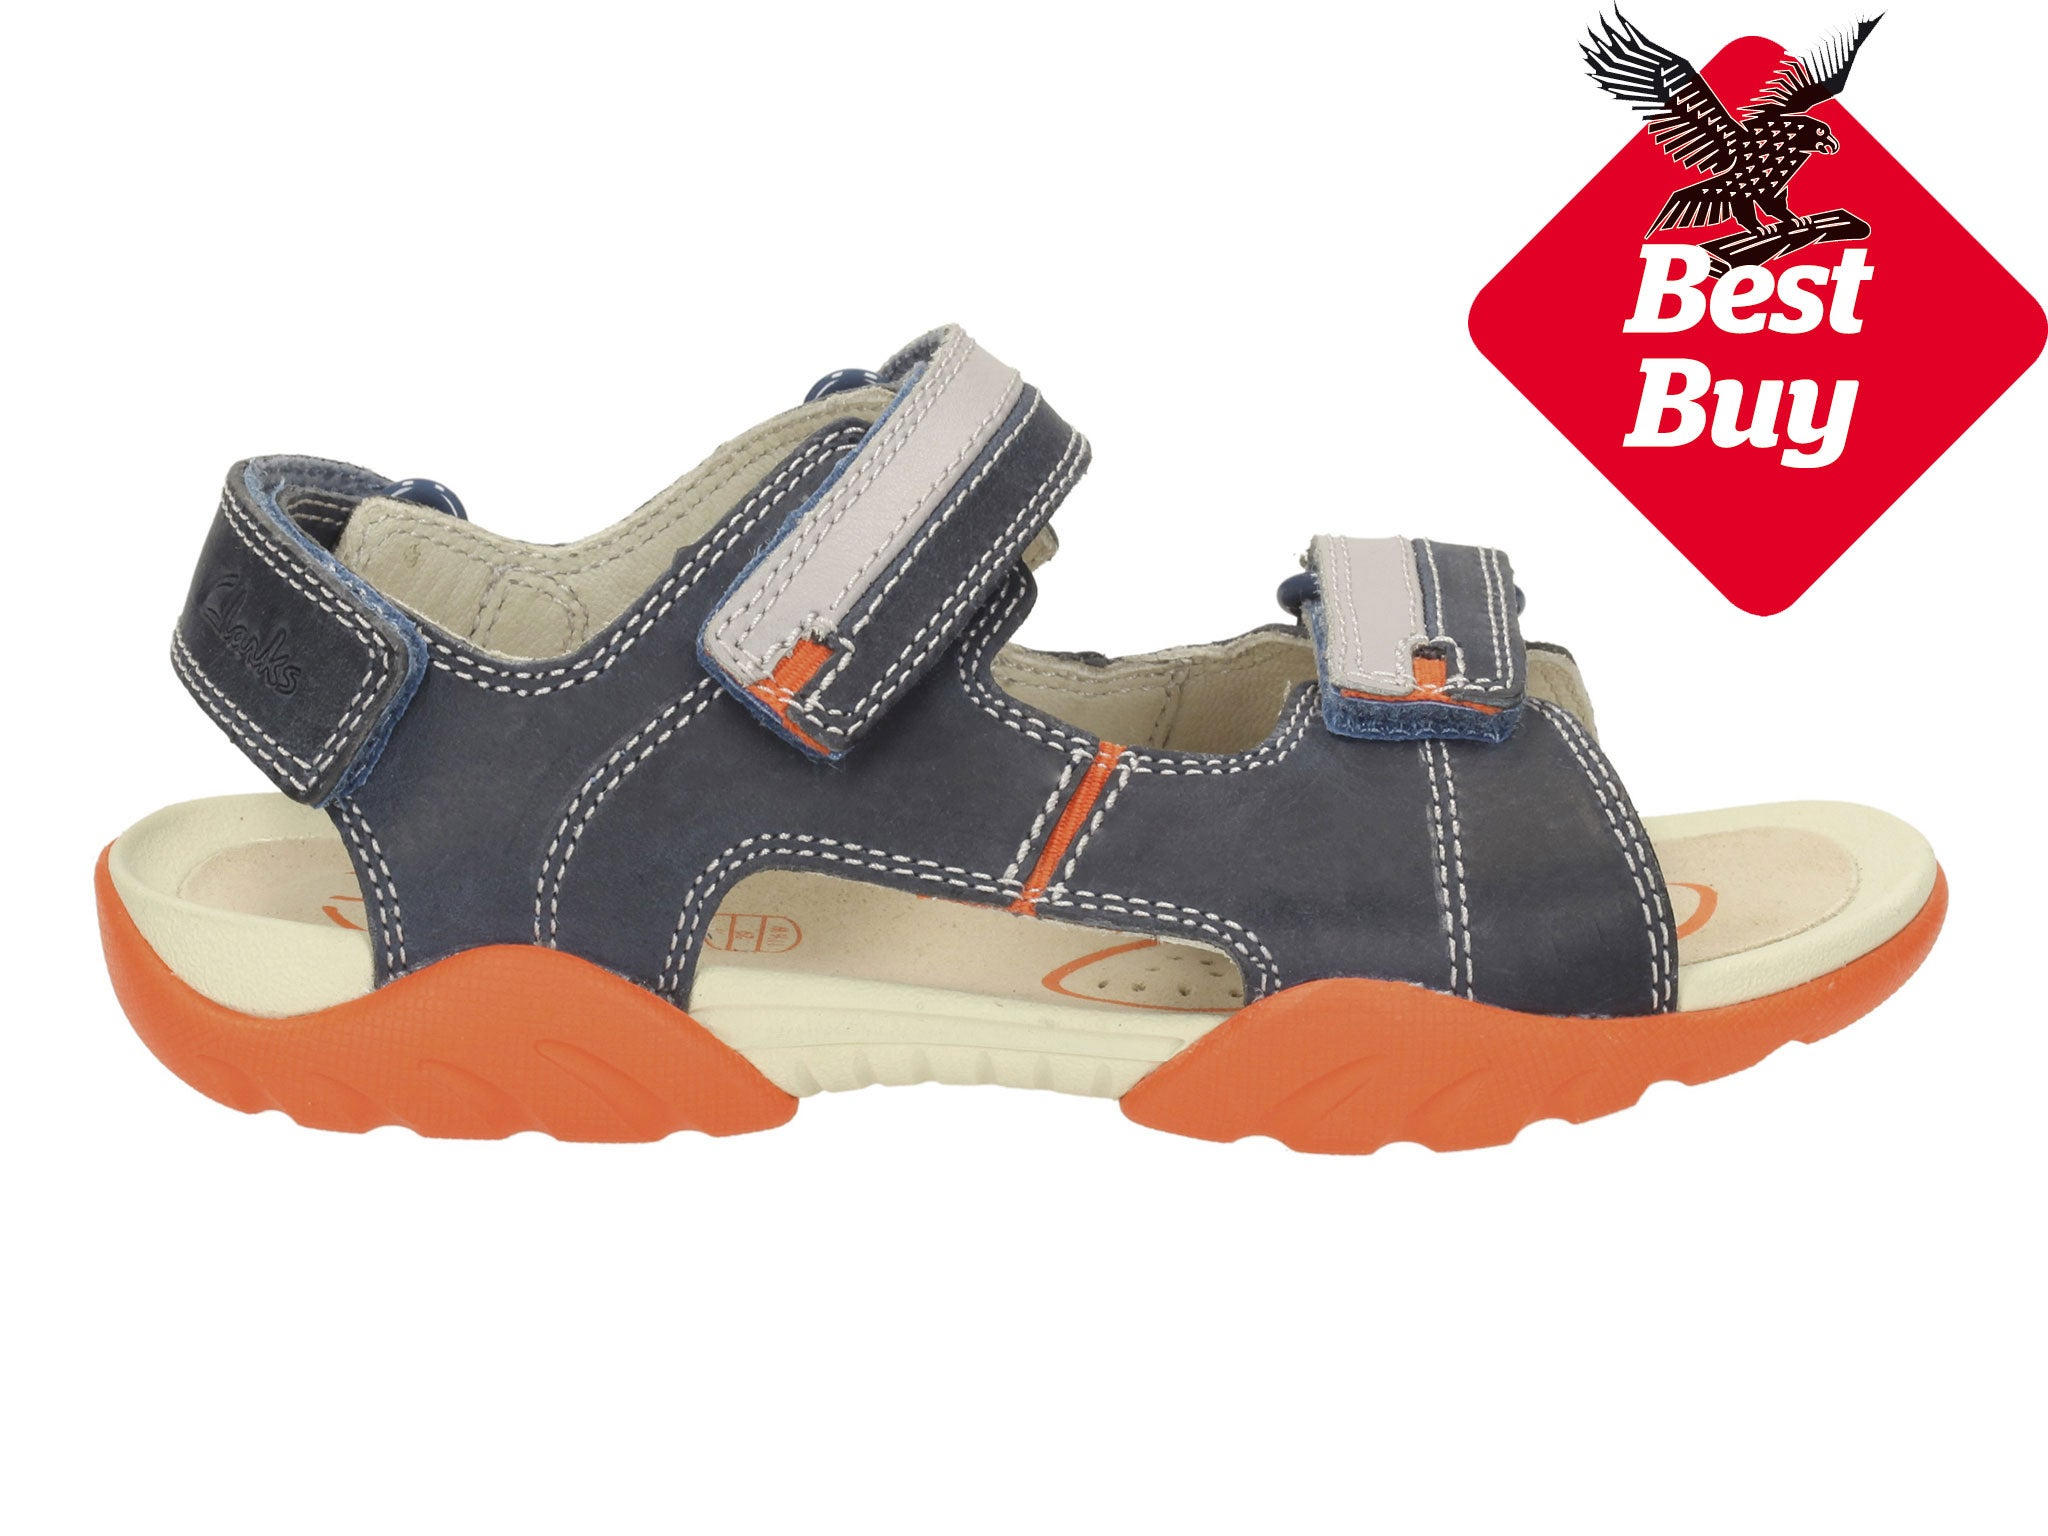 14 best kids' shoes for summer | The Independent